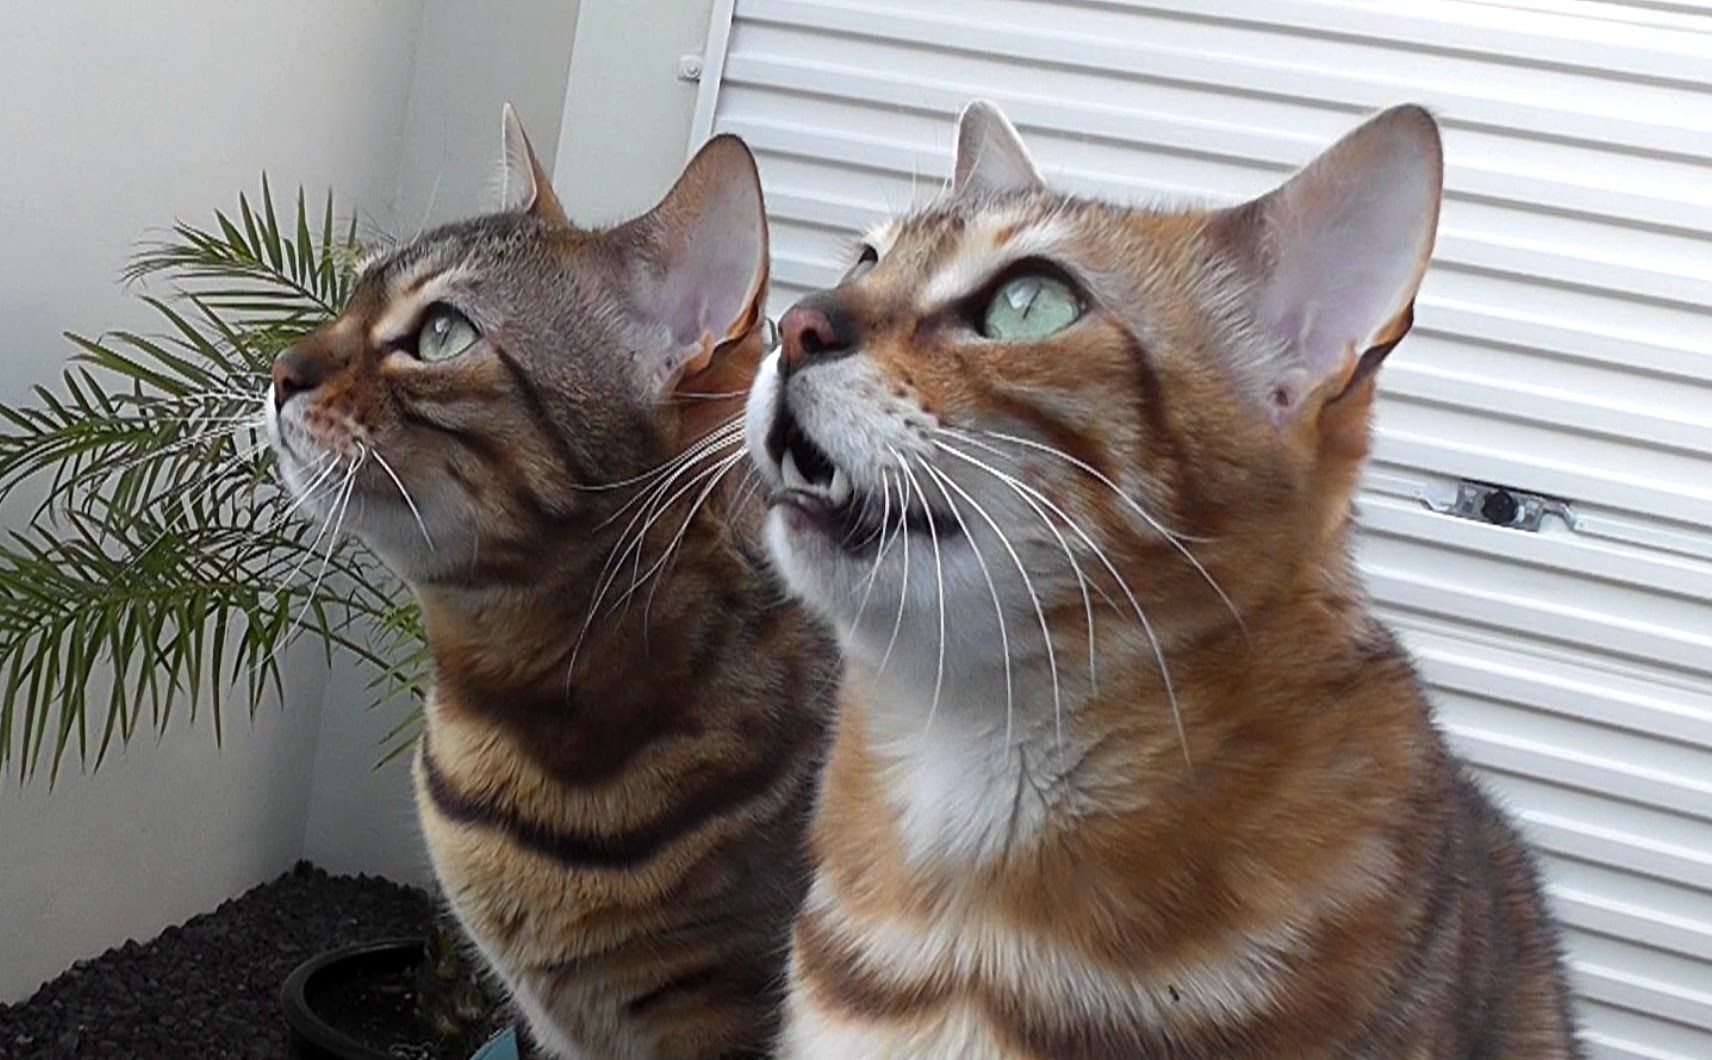 Great Video! Bengal Life Meowing, chirping, yowls! Noisy